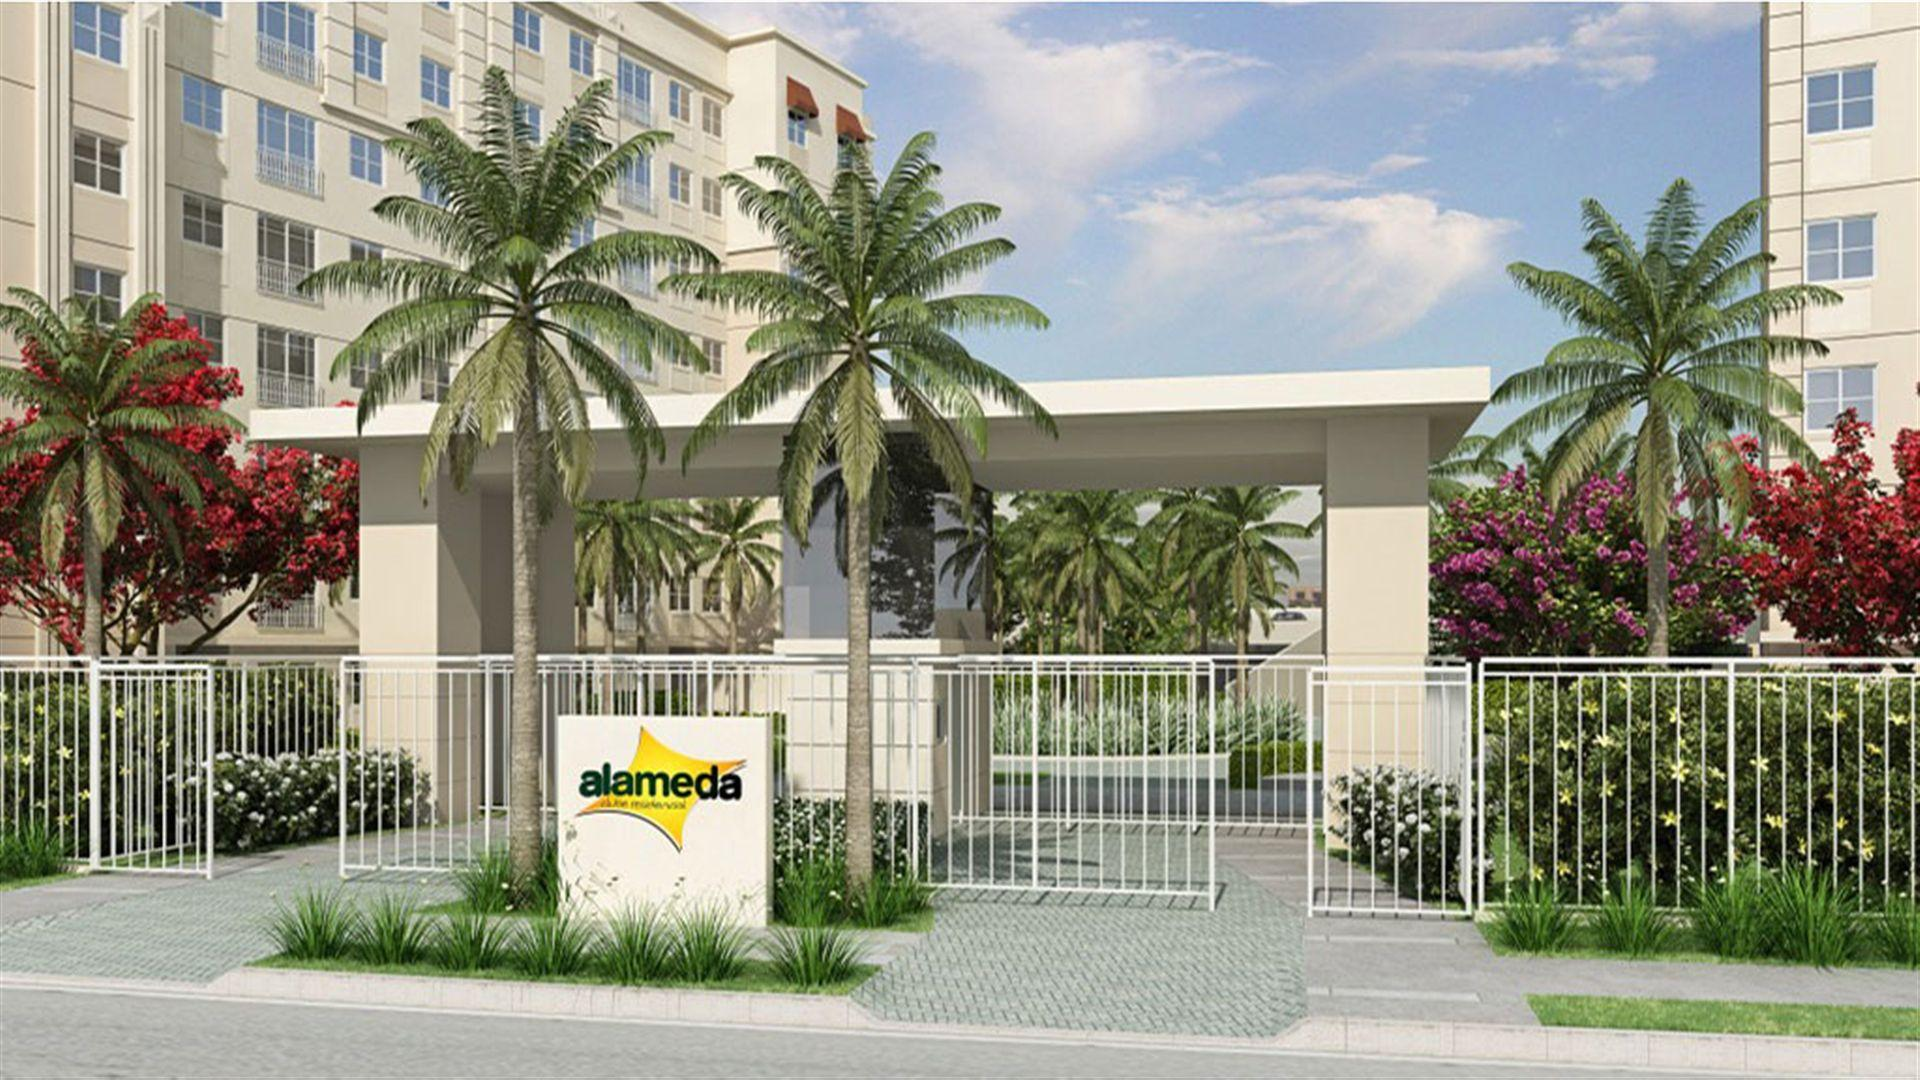 Alameda Clube Residencial